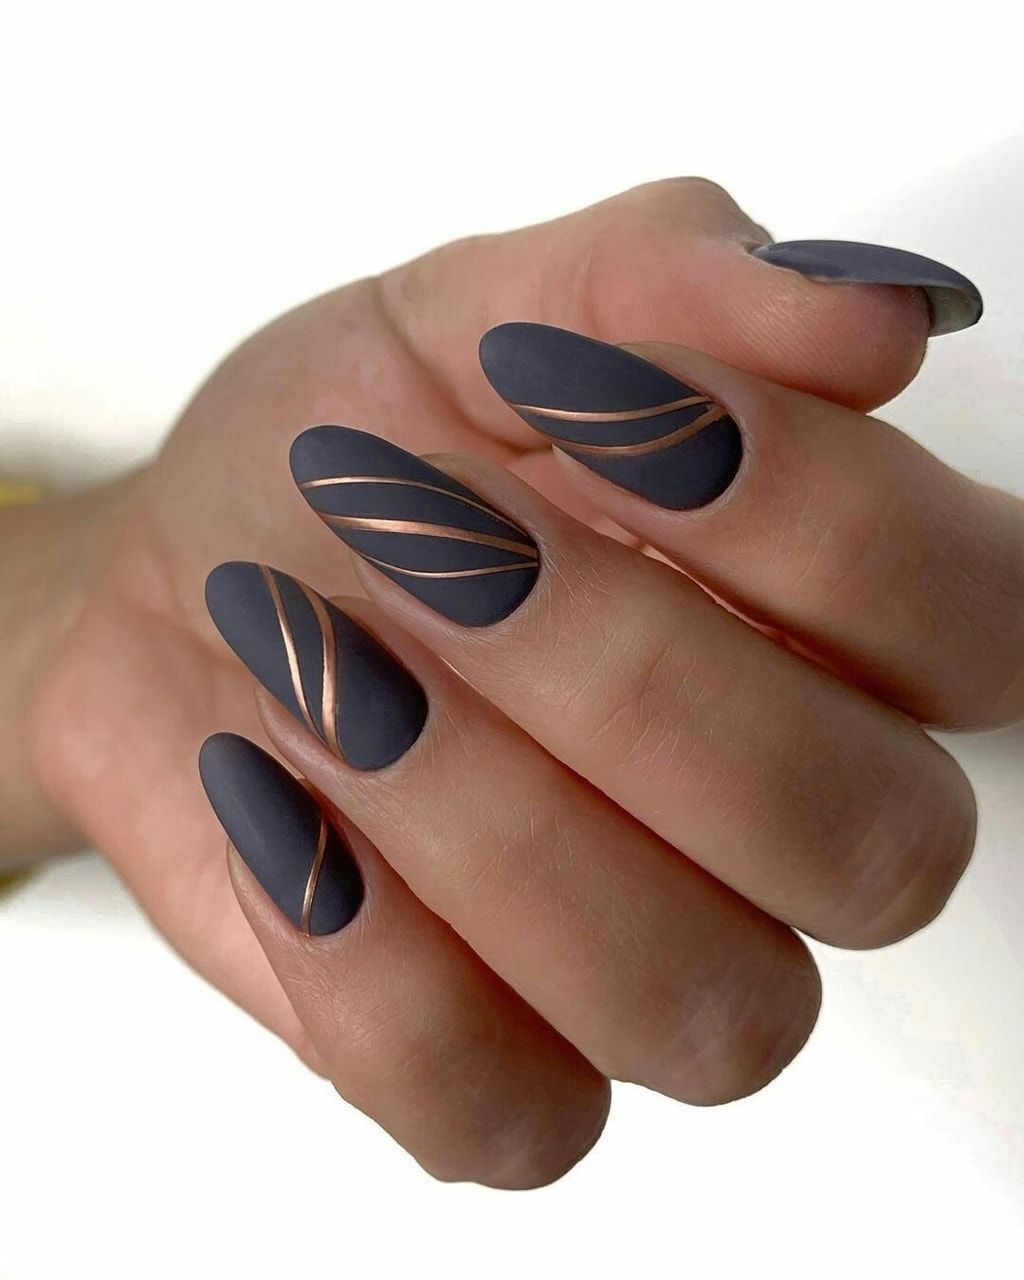 45 Classy Spring Nail Color Designs For Your Exceptional Style In